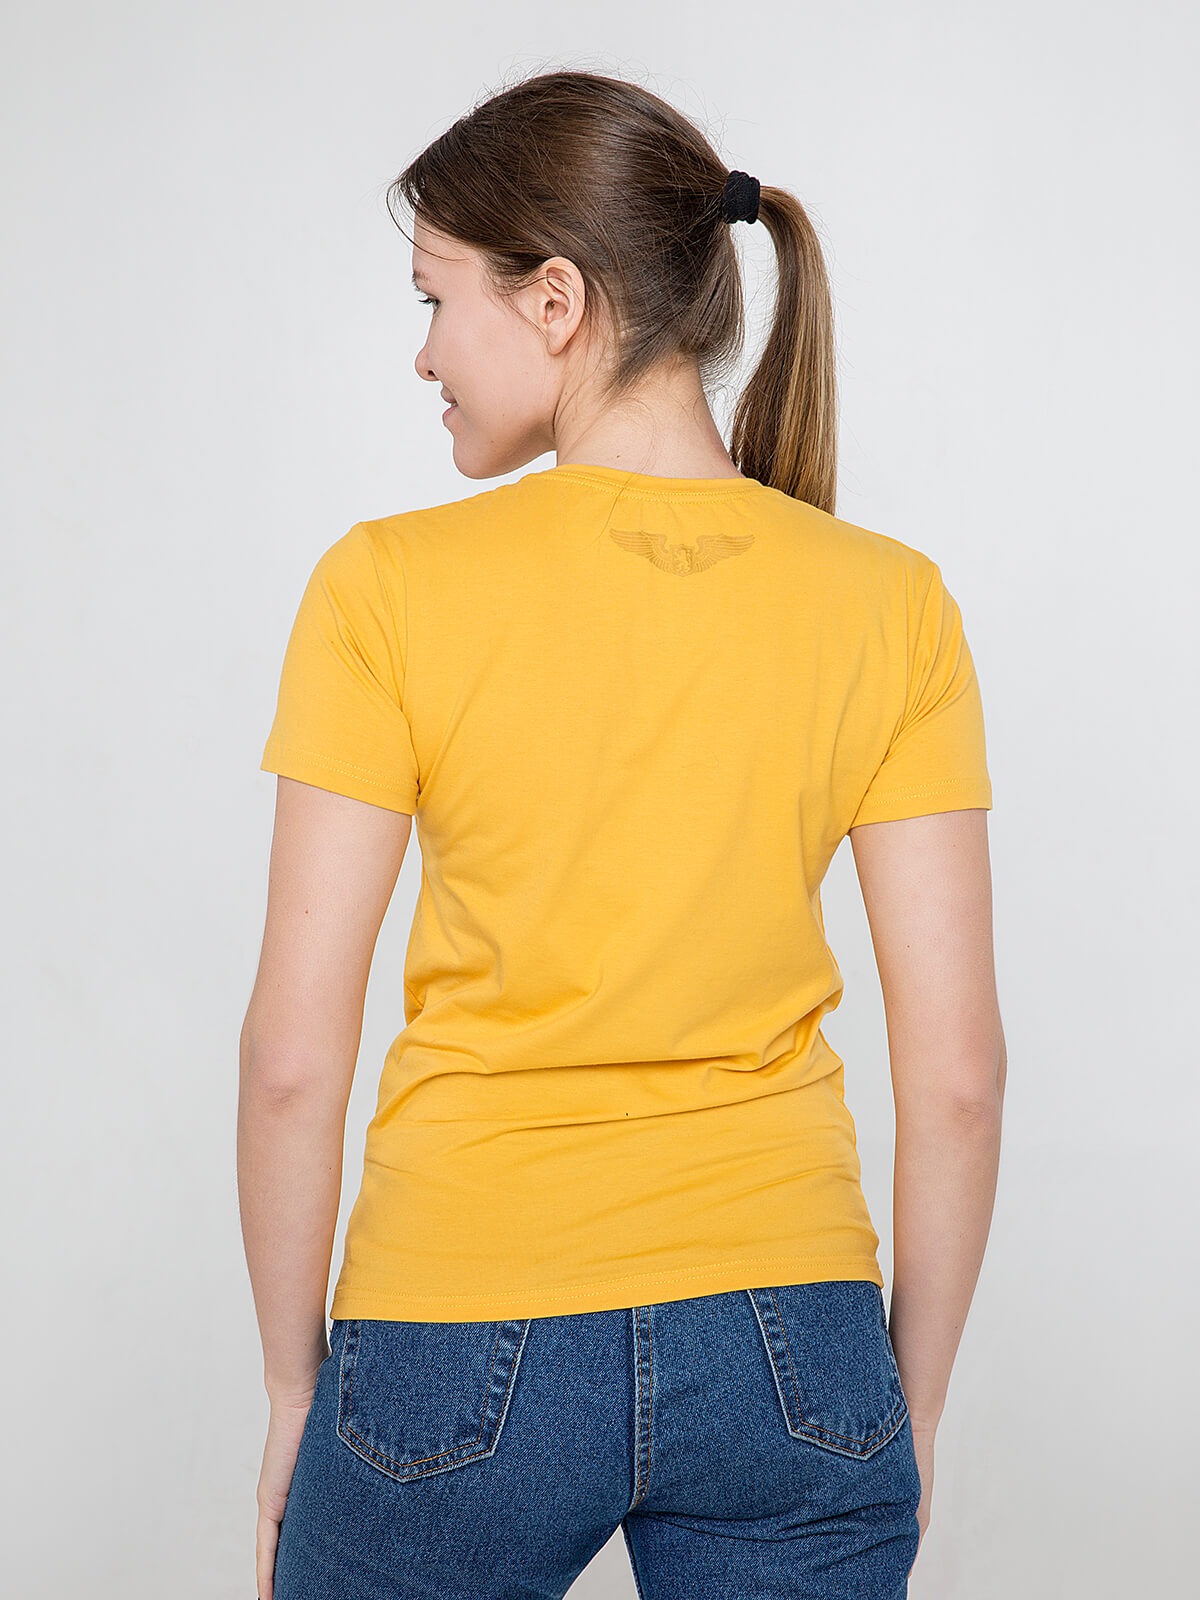 Women's T-Shirt Mriya. Color yellow.  Don't worry about the universal size.